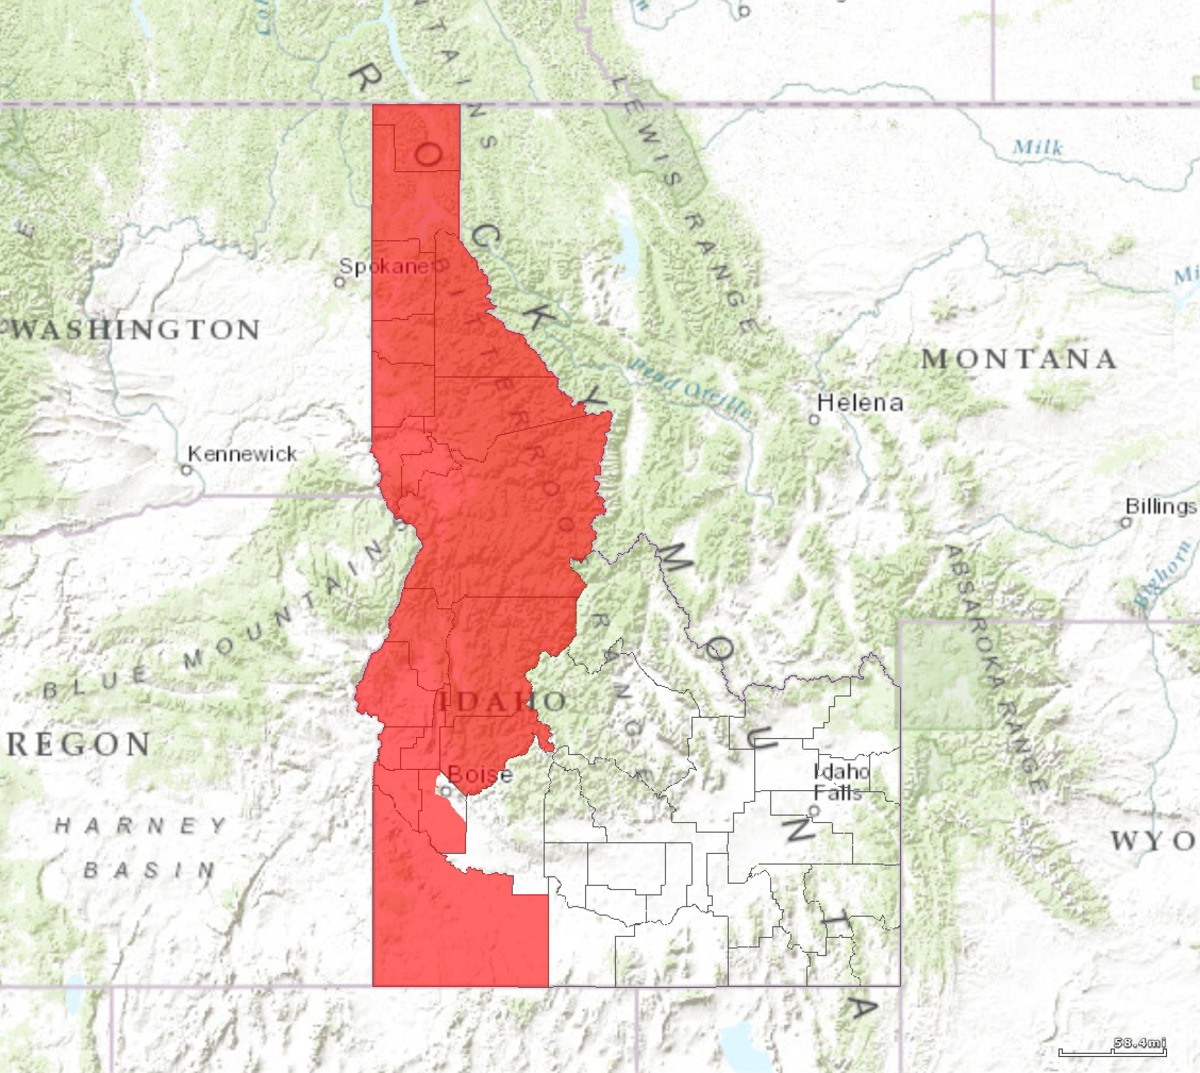 Idahos St Congressional District Wikipedia - Idaho political map